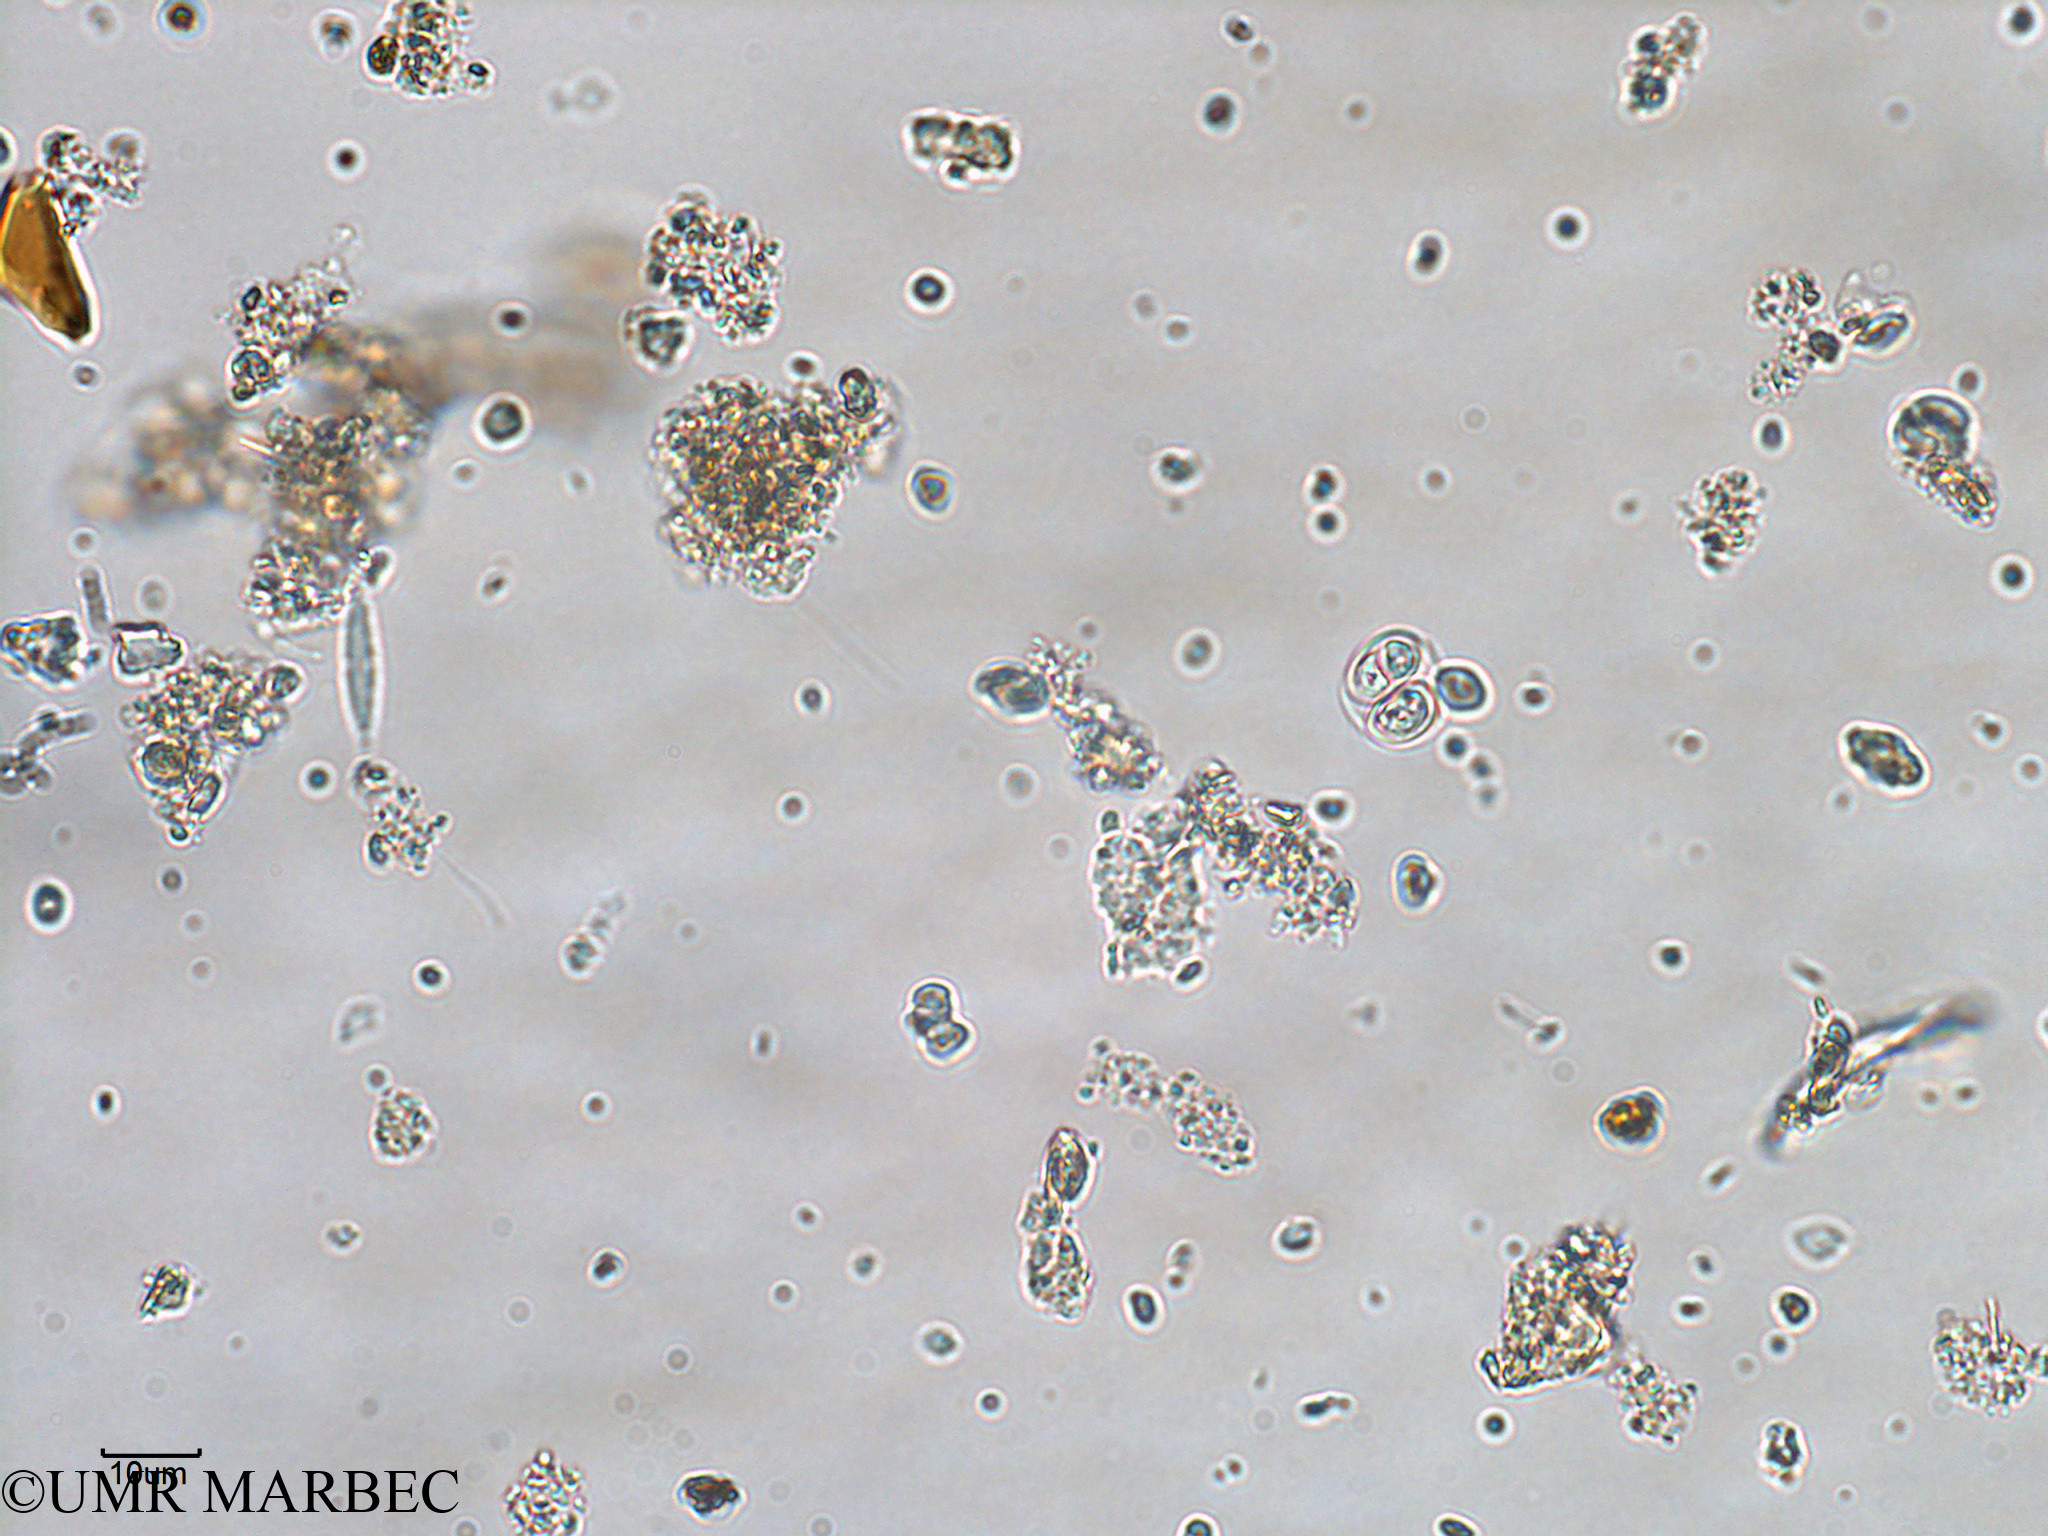 phyto/Bizerte/bizerte_bay/RISCO February 2015/Oocystis sp (ancien Baie_T1-A_oocystis-8).tif(copy).jpg